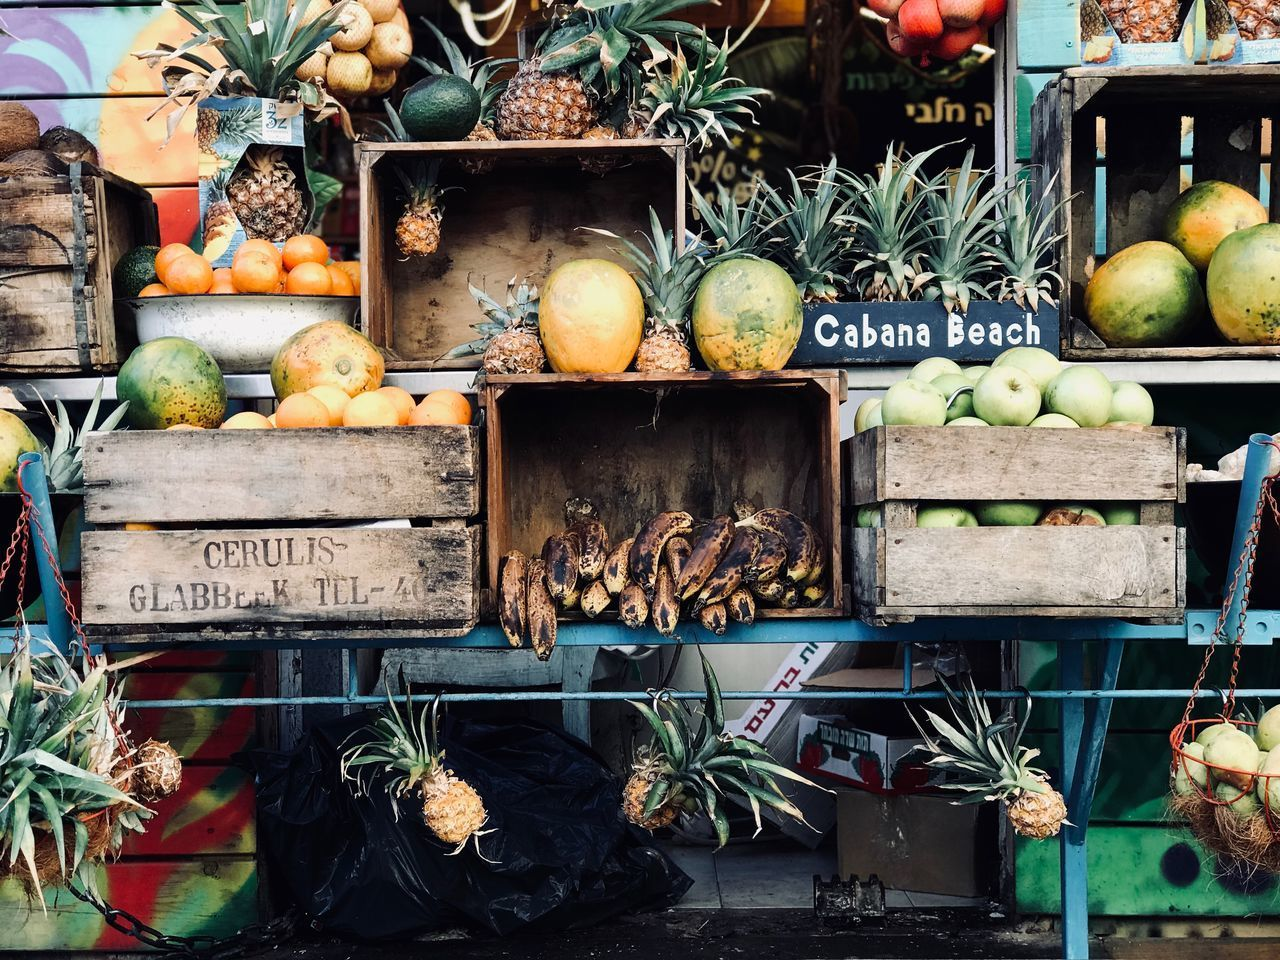 healthy eating, food and drink, retail, market, fruit, food, choice, communication, text, freshness, wellbeing, for sale, variation, large group of objects, market stall, no people, apple - fruit, day, western script, script, sale, retail display, outdoors